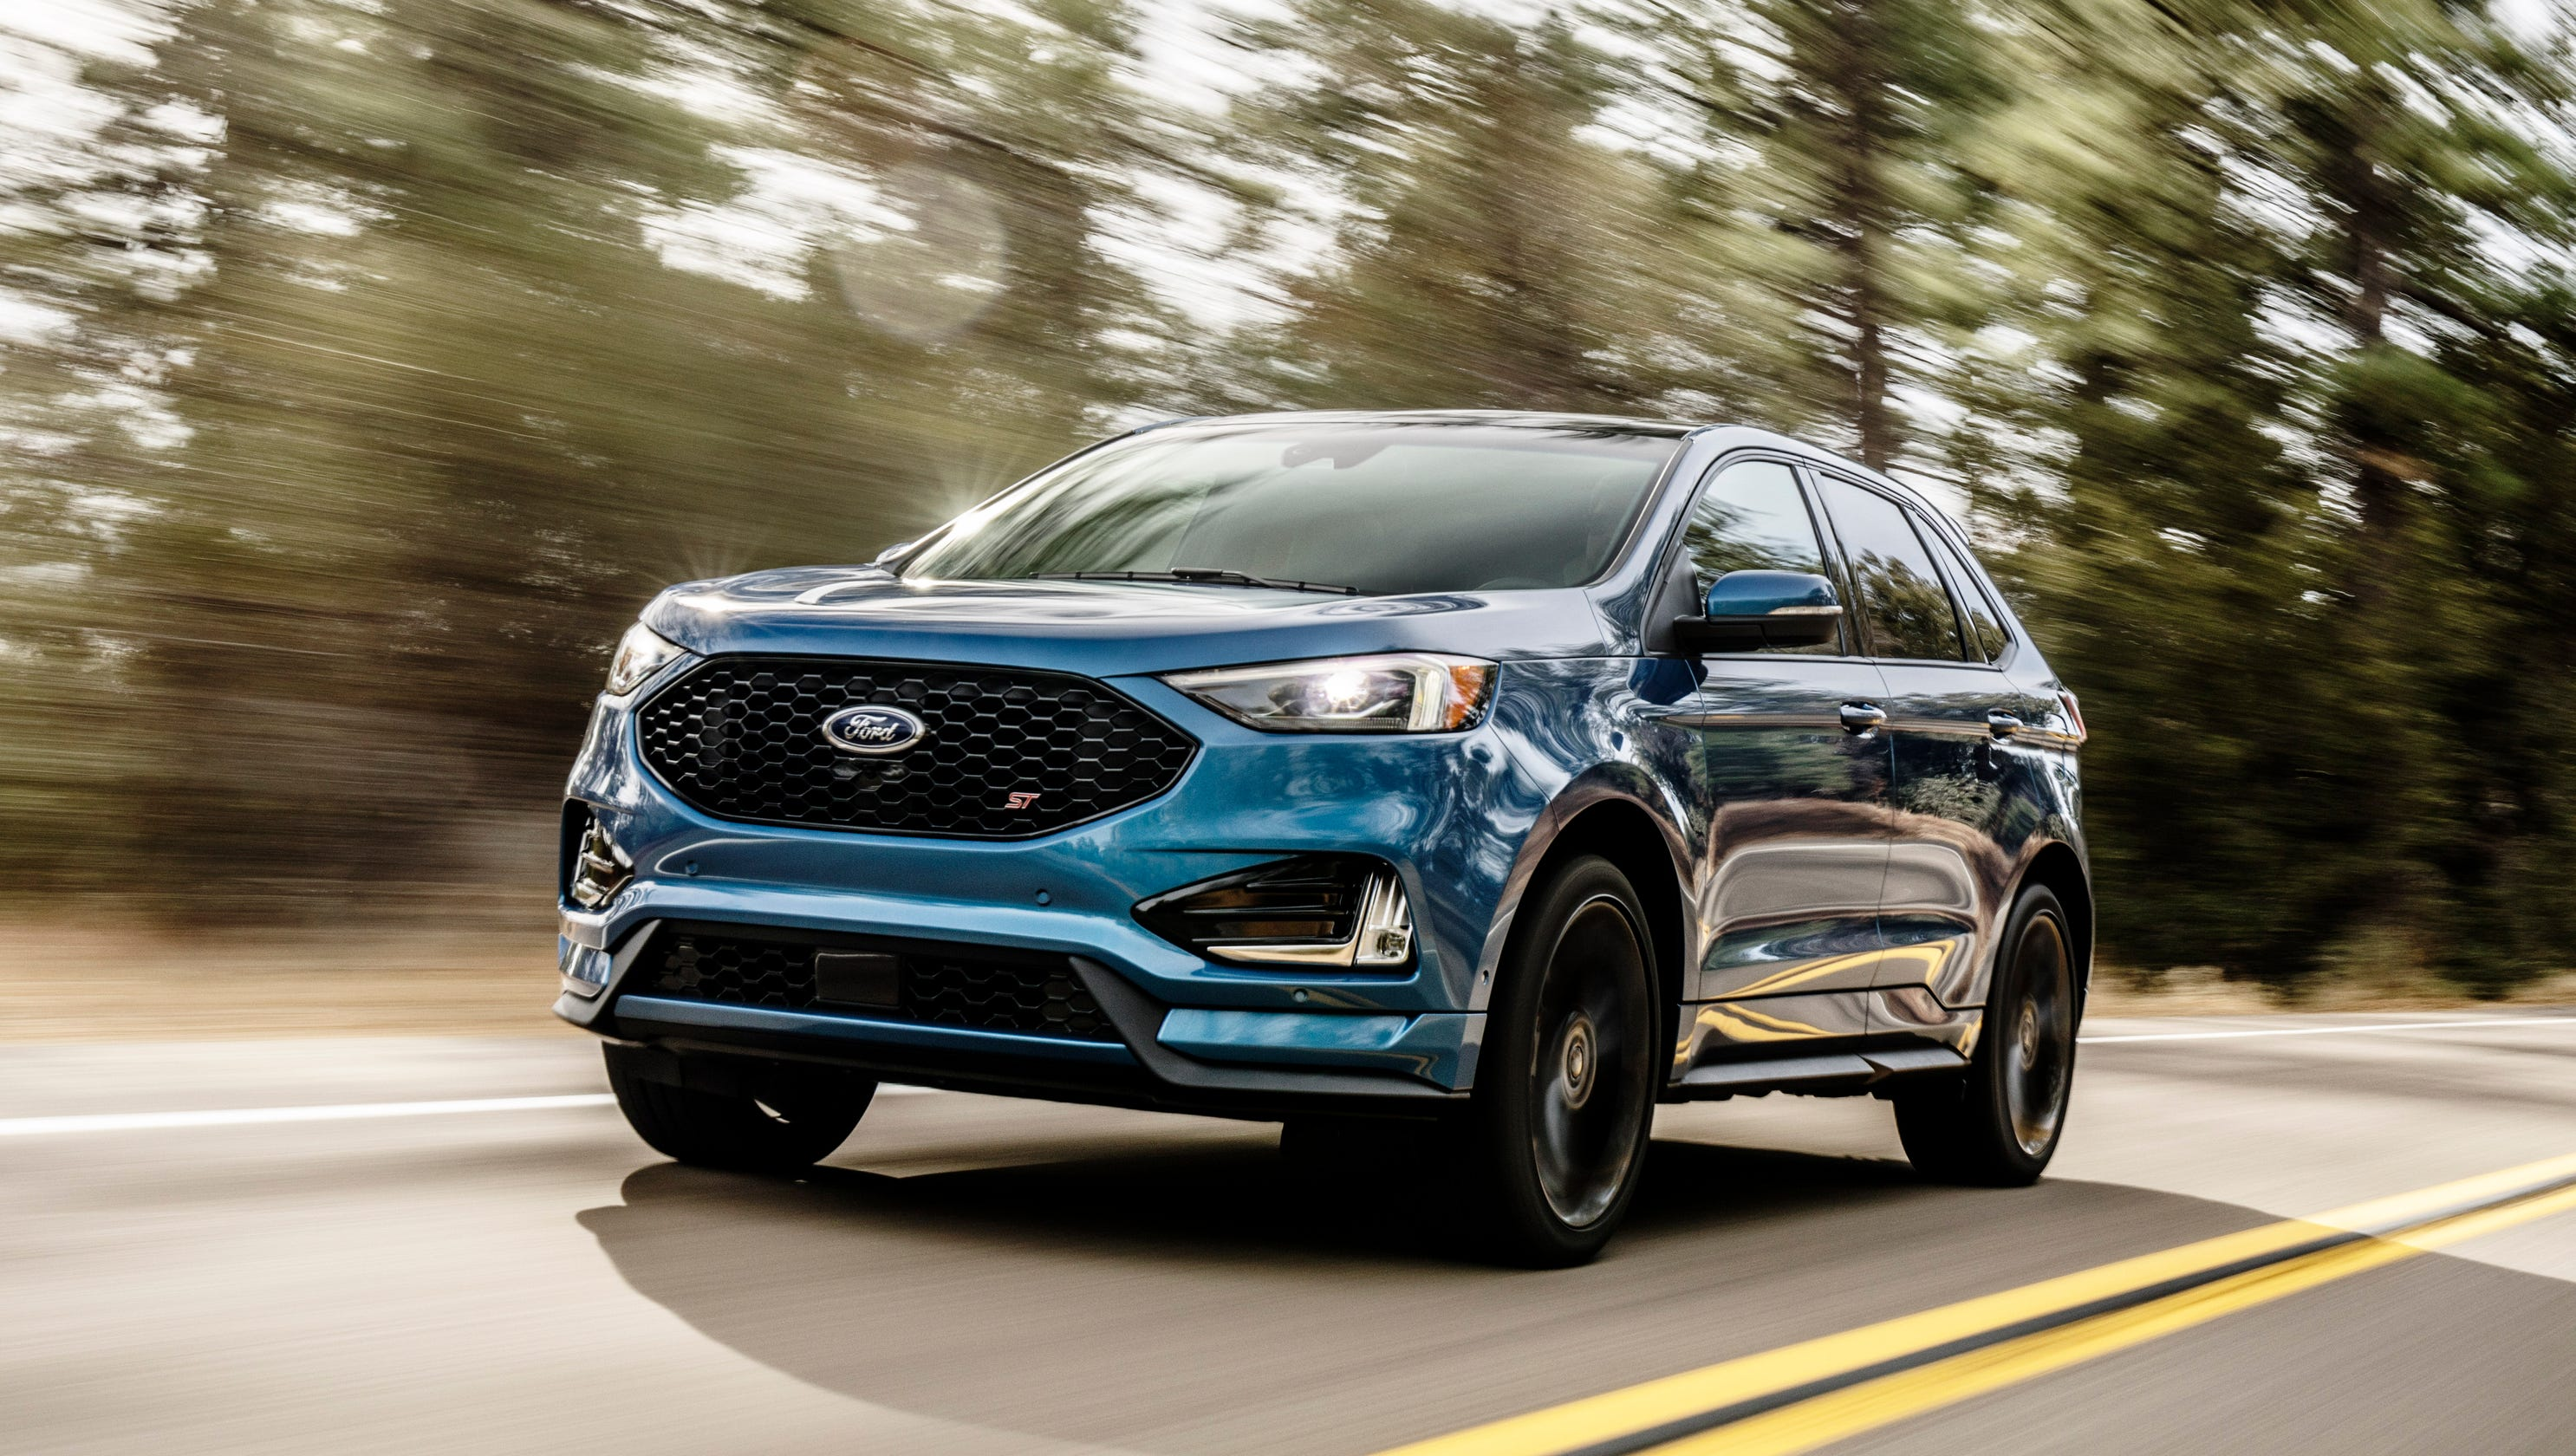 2019 Ford Edge ST review: SUV is fast and fun until you hit